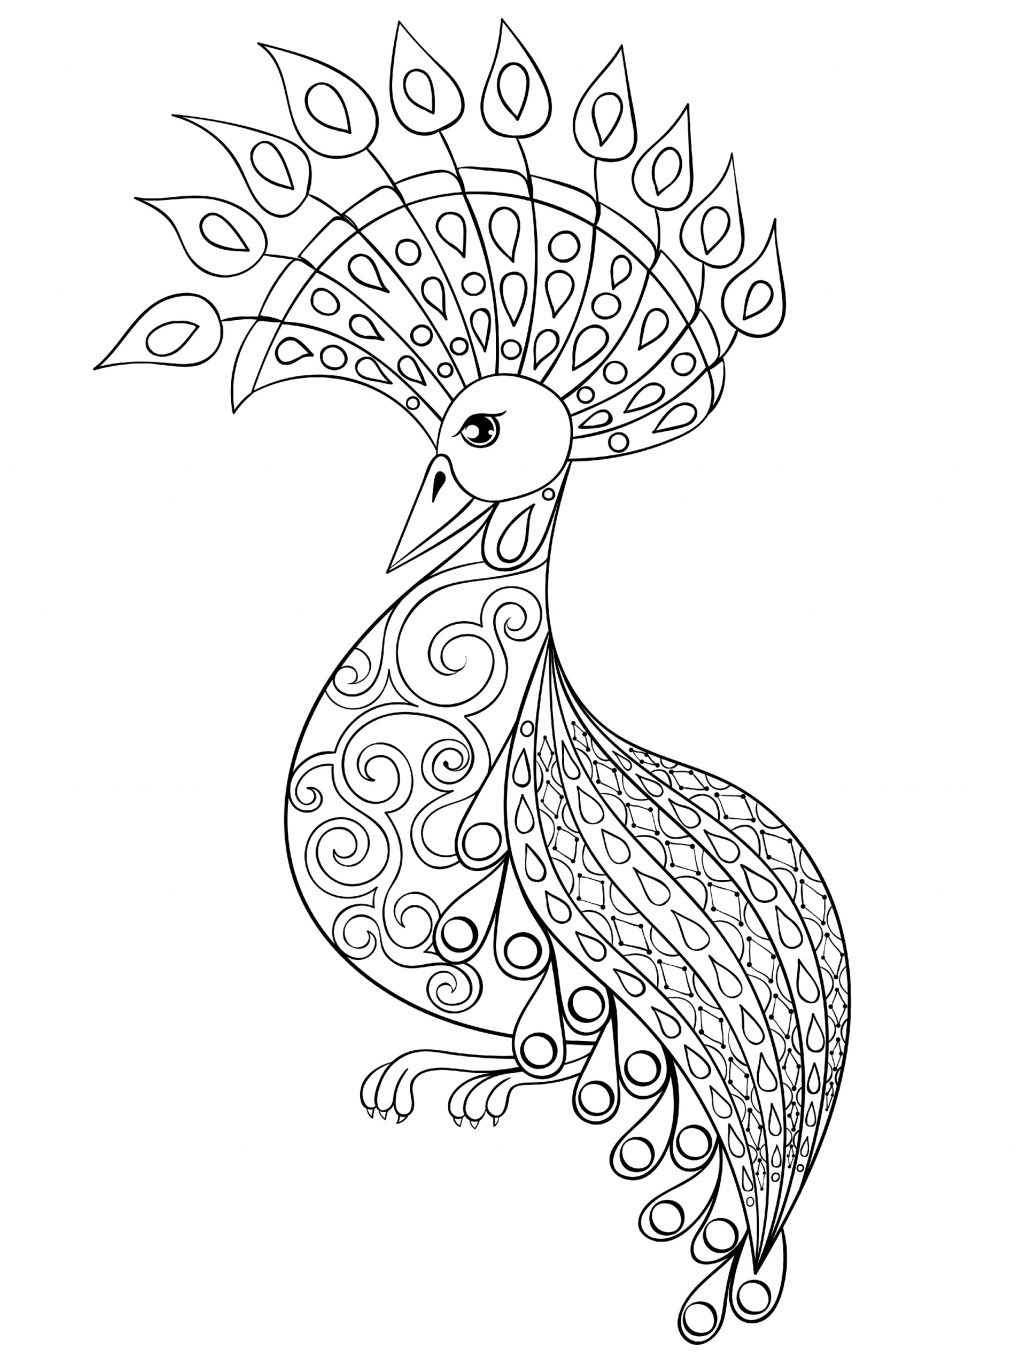 Coloring Pages : Small Adult Coloring Books Incredible Peacock Page - Free Printable Peacock Pictures